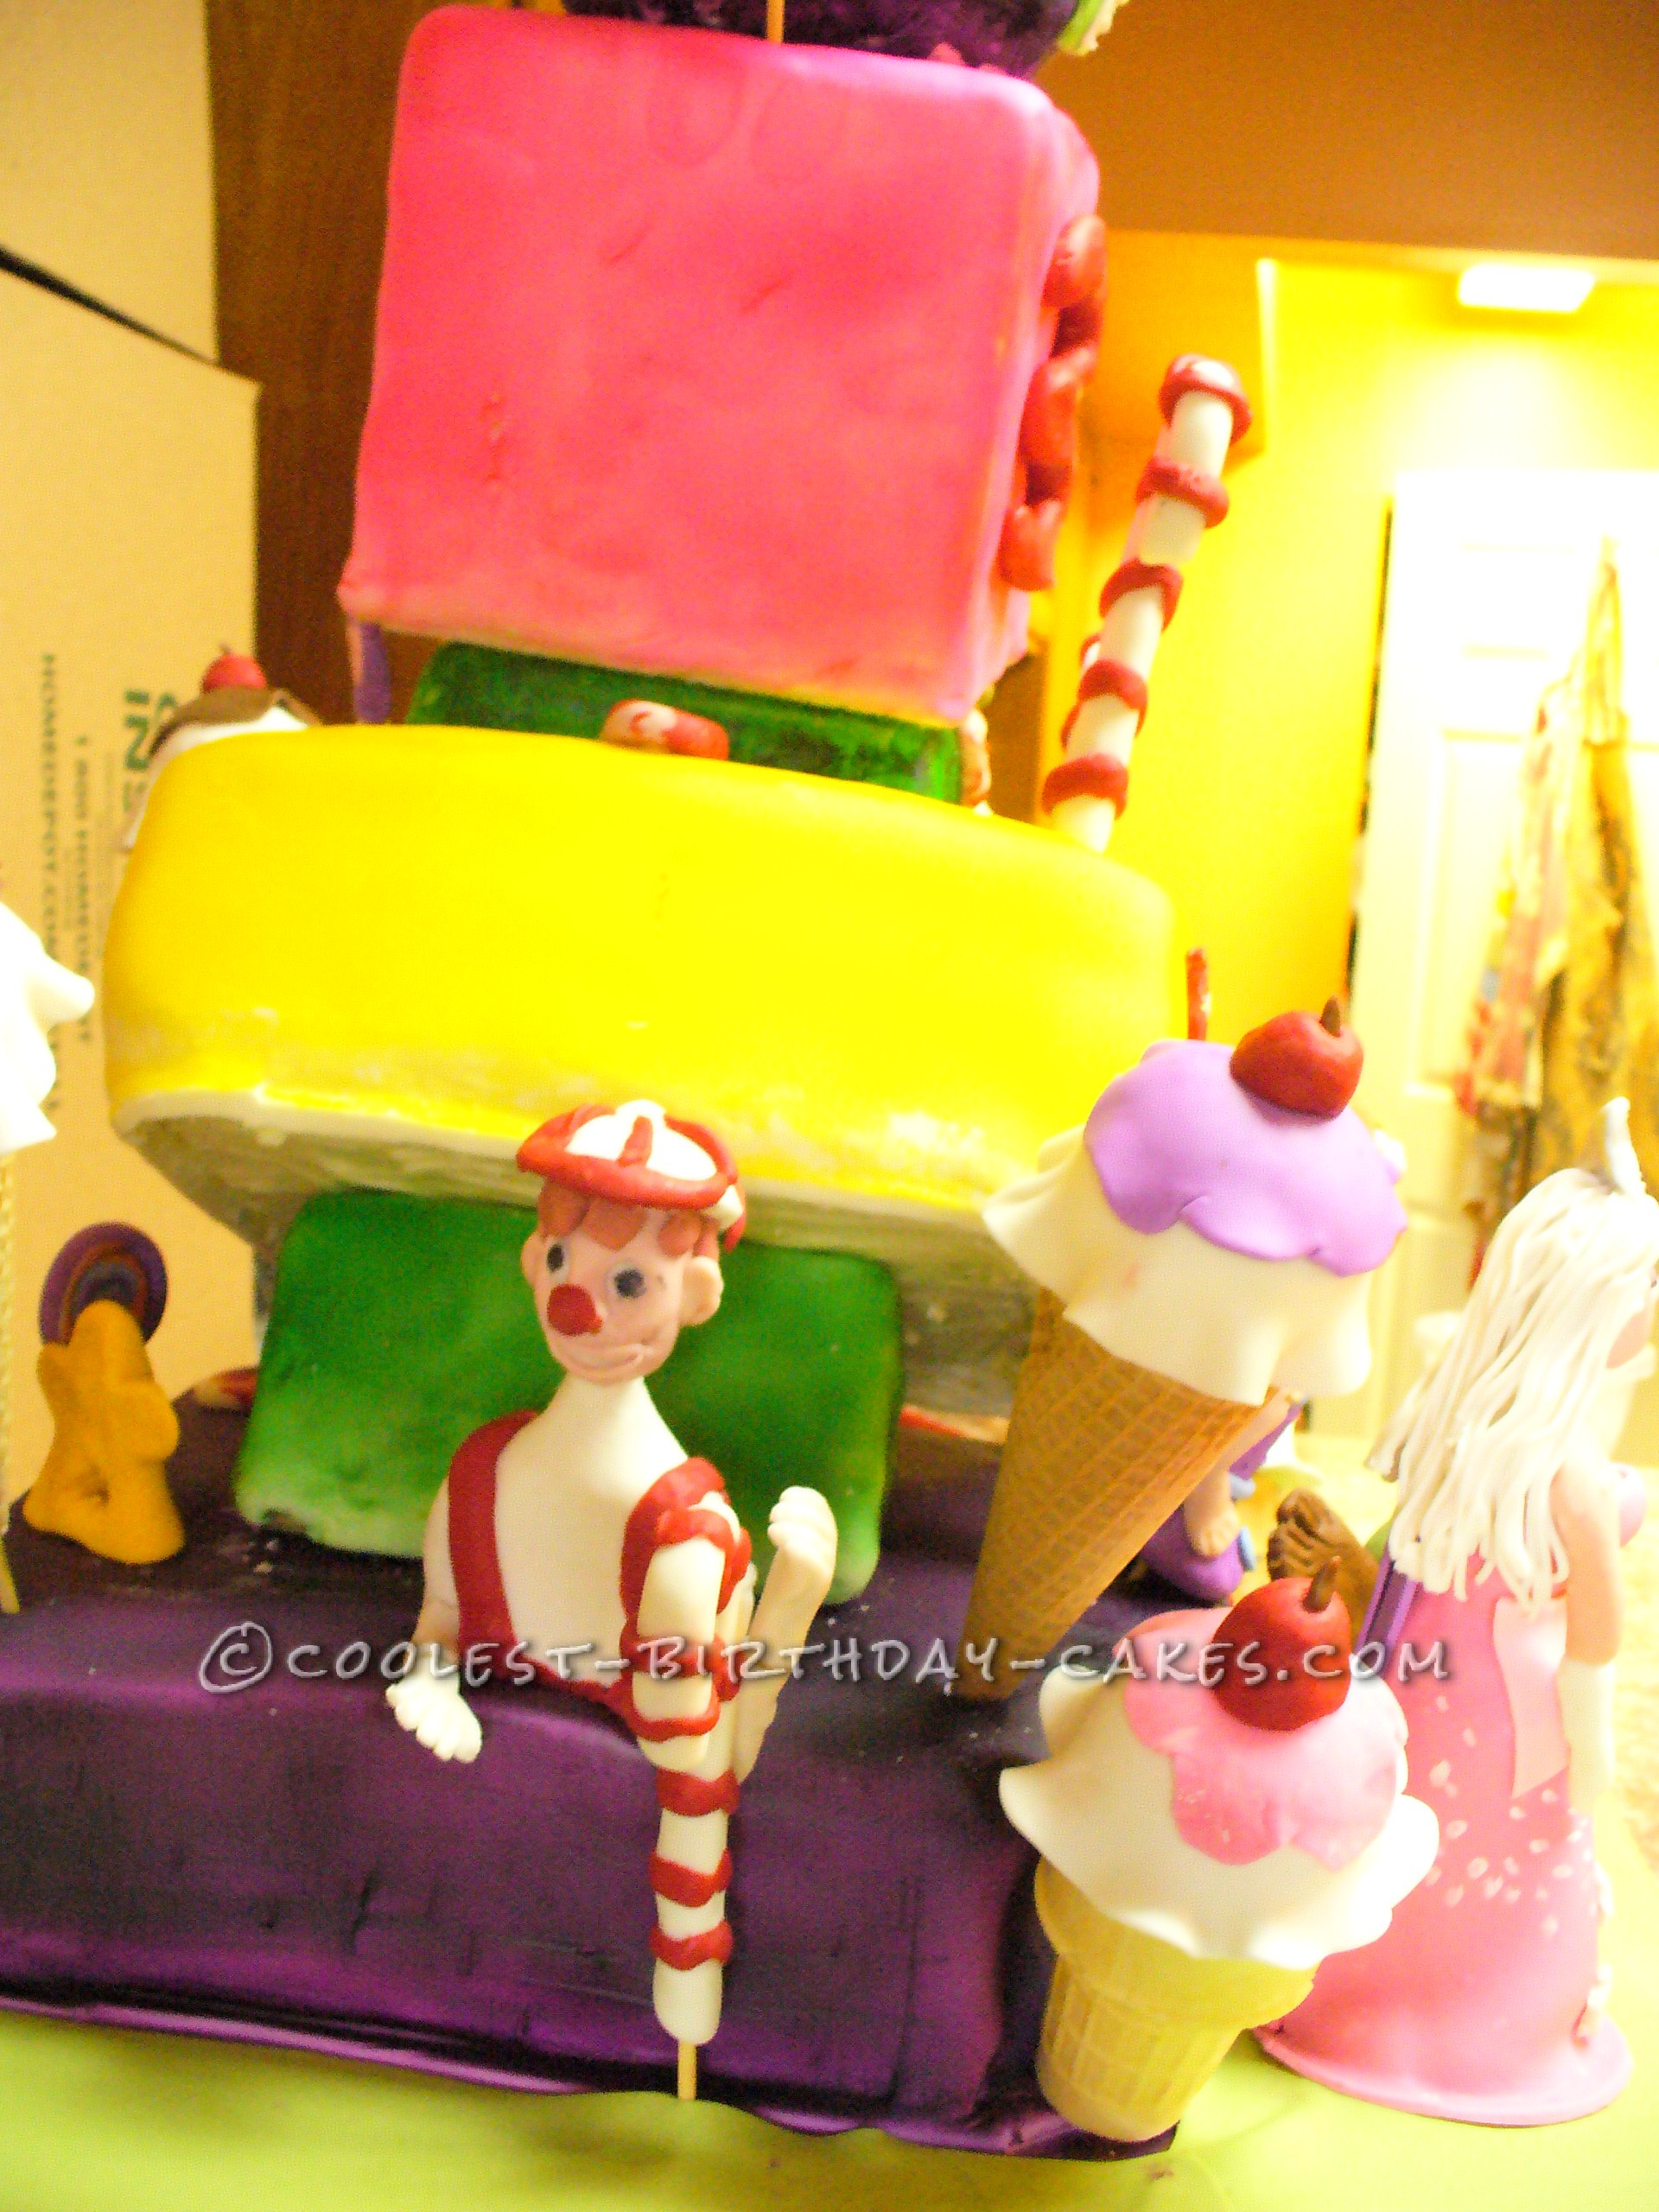 Coolest Candyland Topsy Turvy Cake